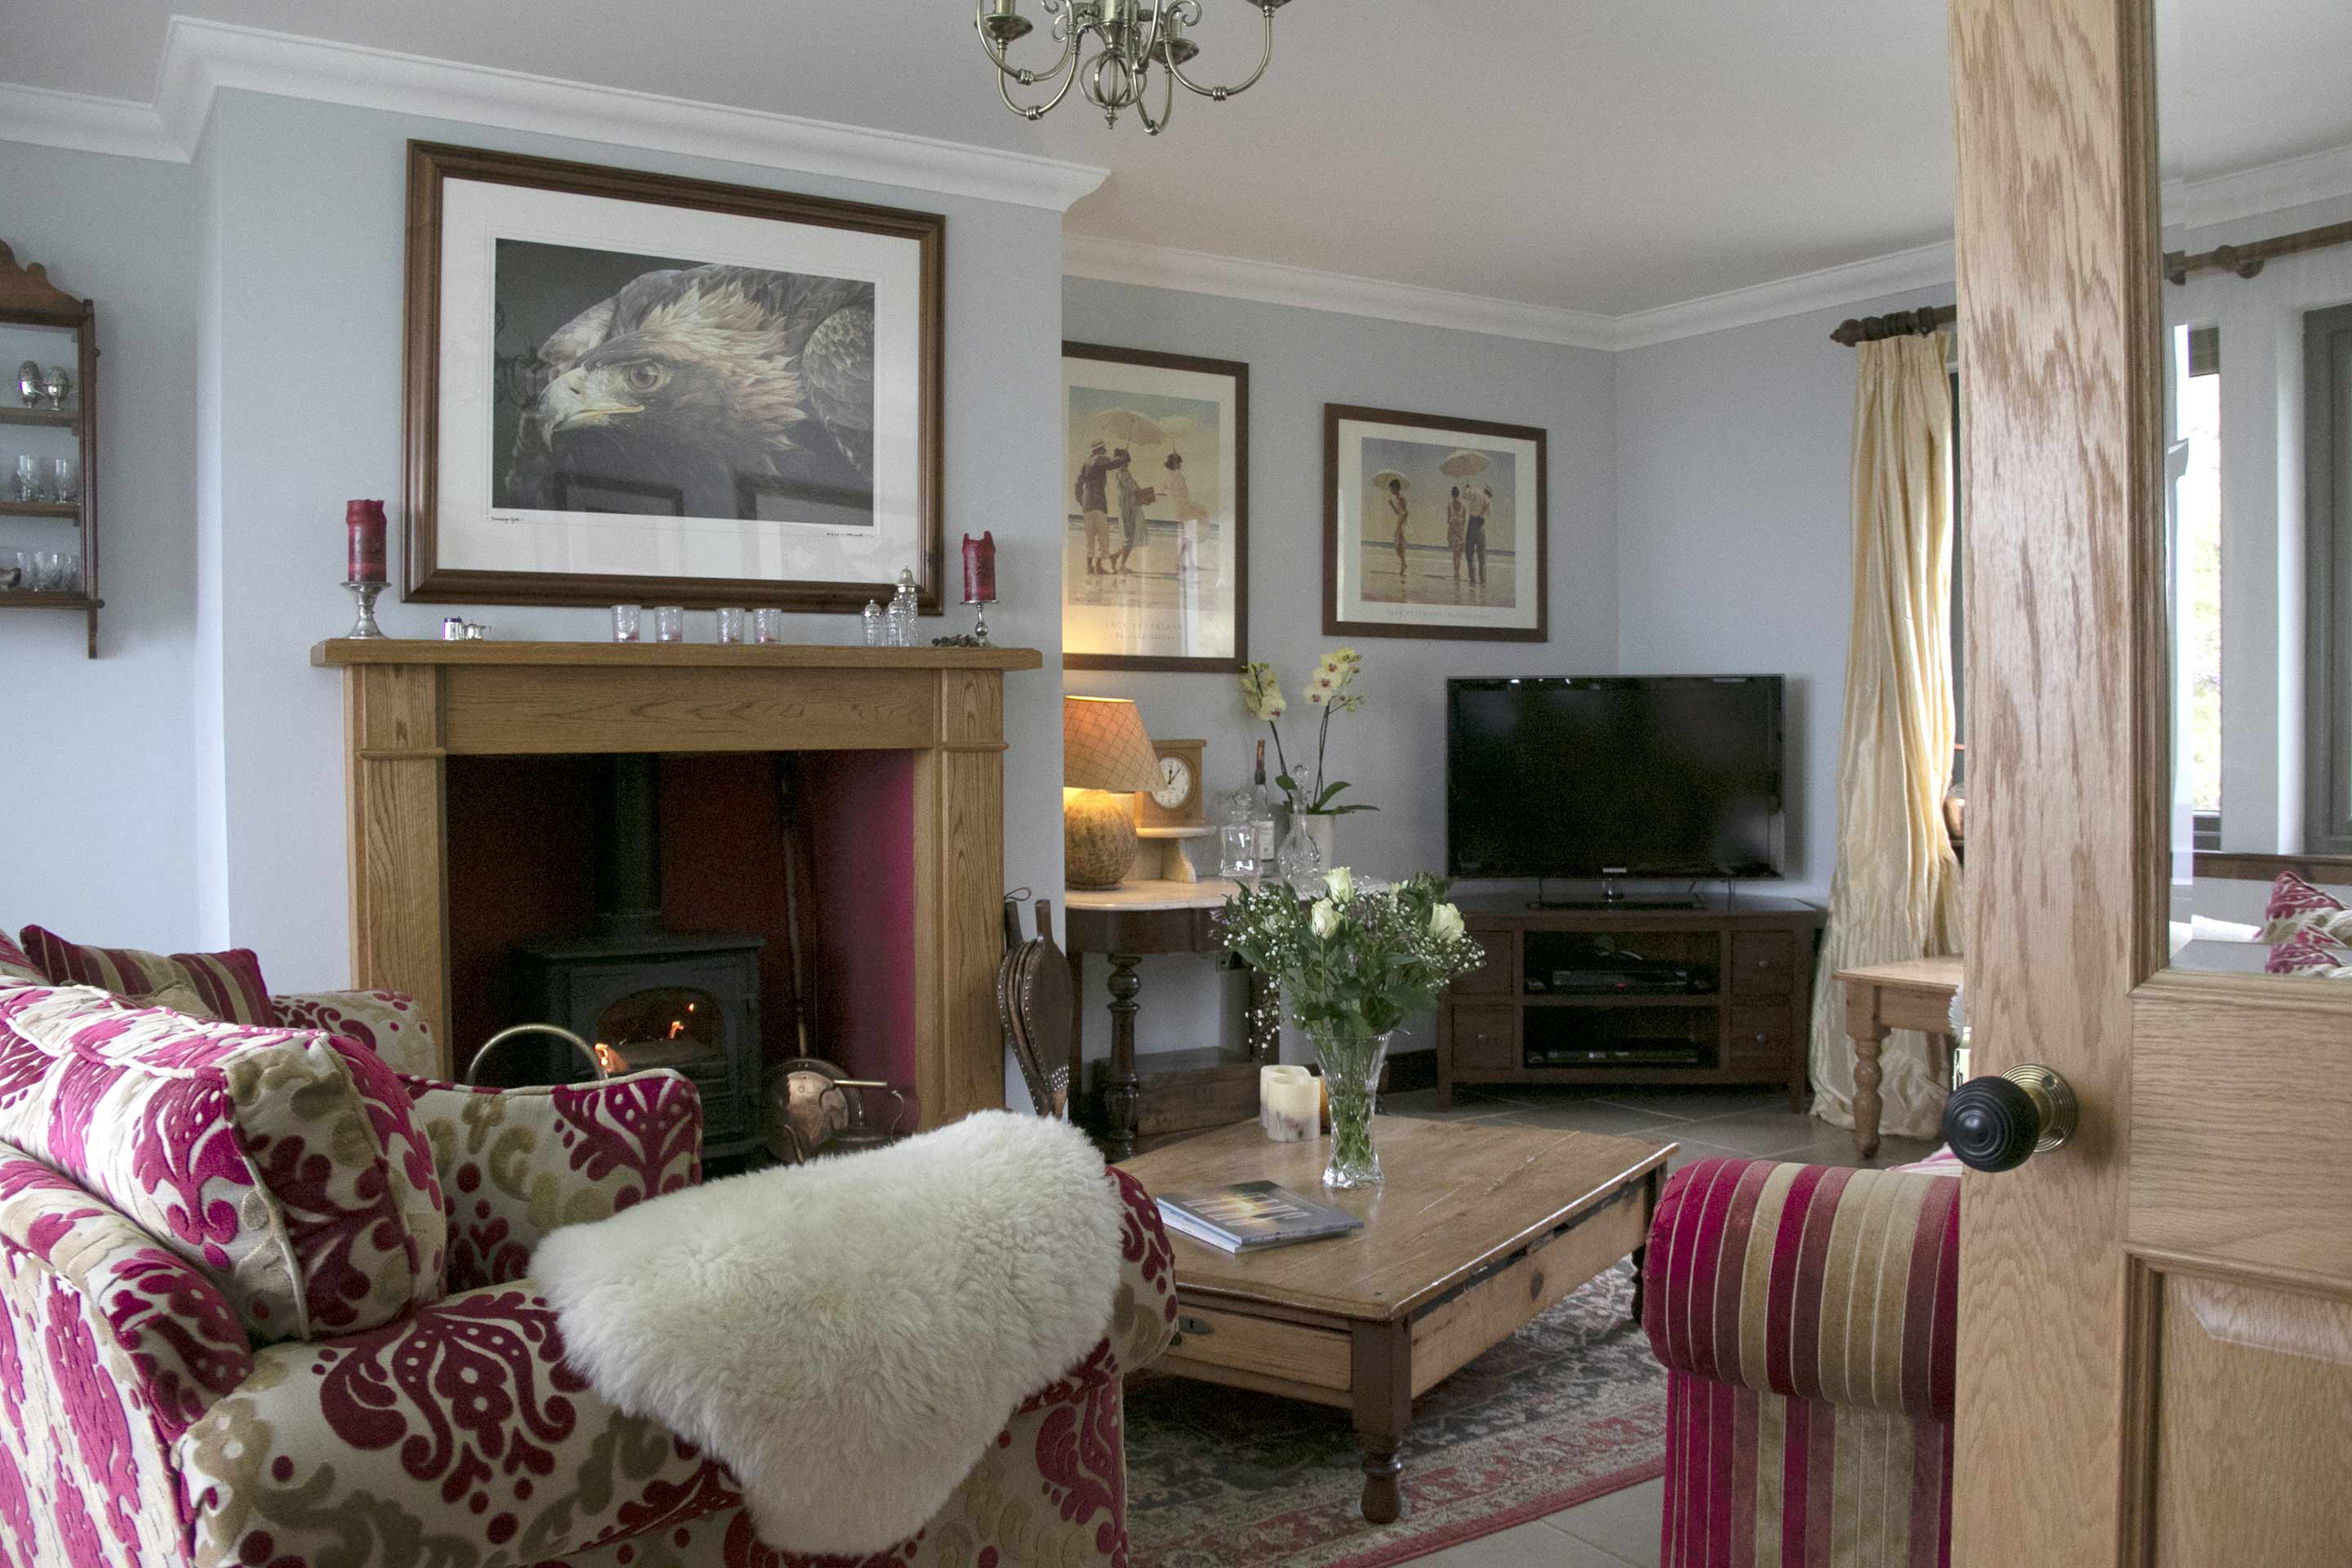 https://creaghouseskye.co.uk/wp-content/uploads/2019/09/creag-house-livingroom-019.jpg